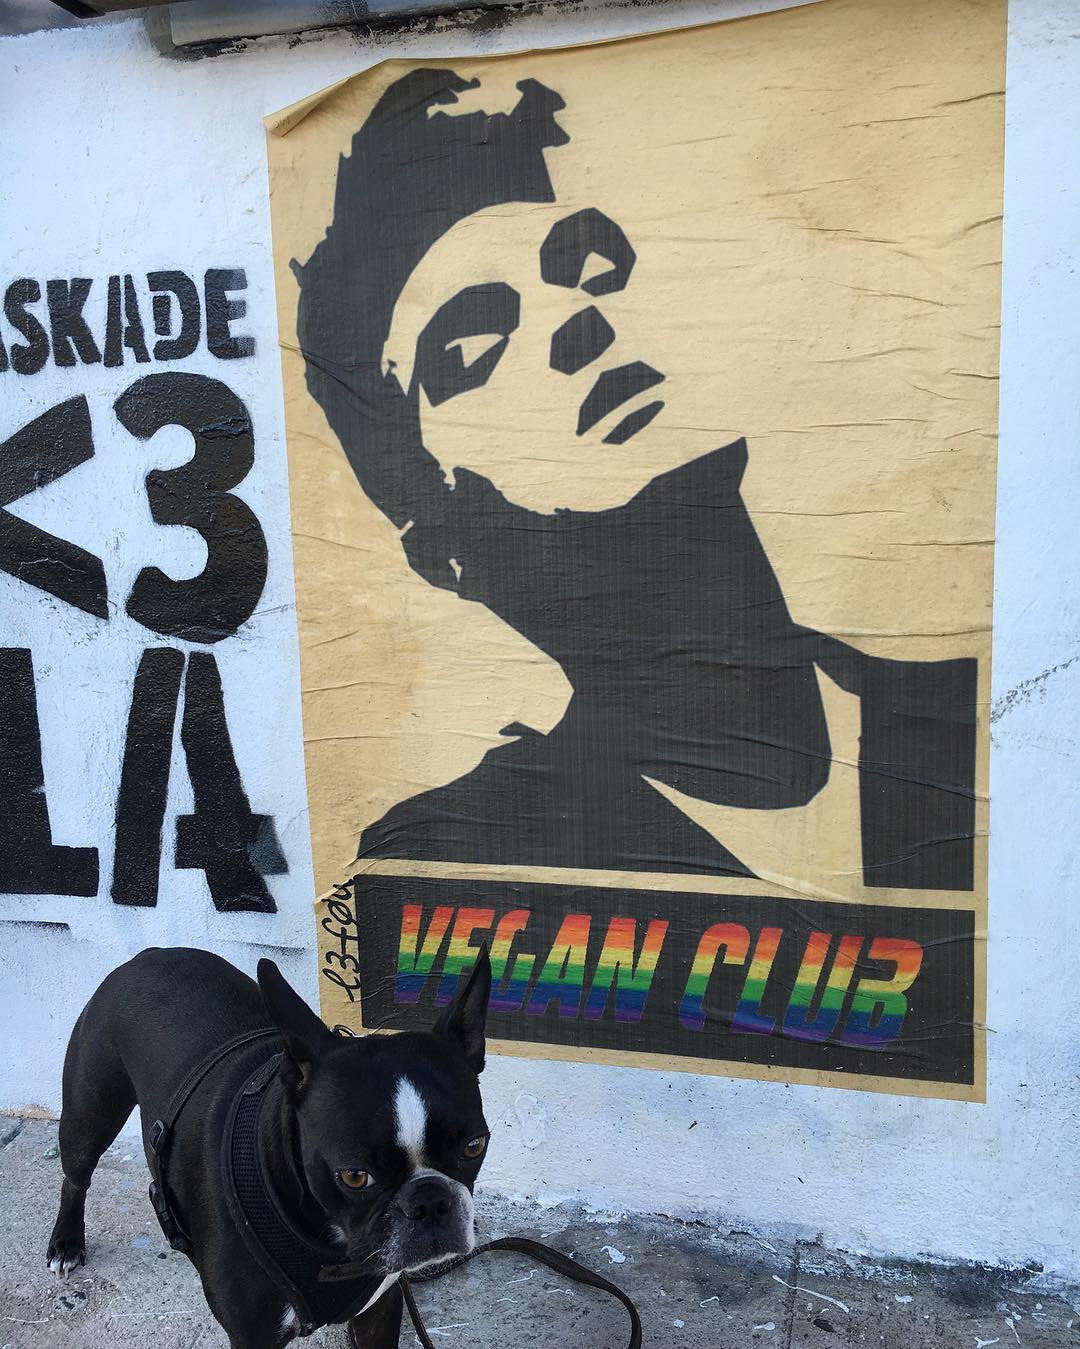 Street Art NewsPrint Poster with Rainbow Vegan Club feat. Morrissey Signed L3f0u @dinorachelle @haperleescorsese & @eldevo_